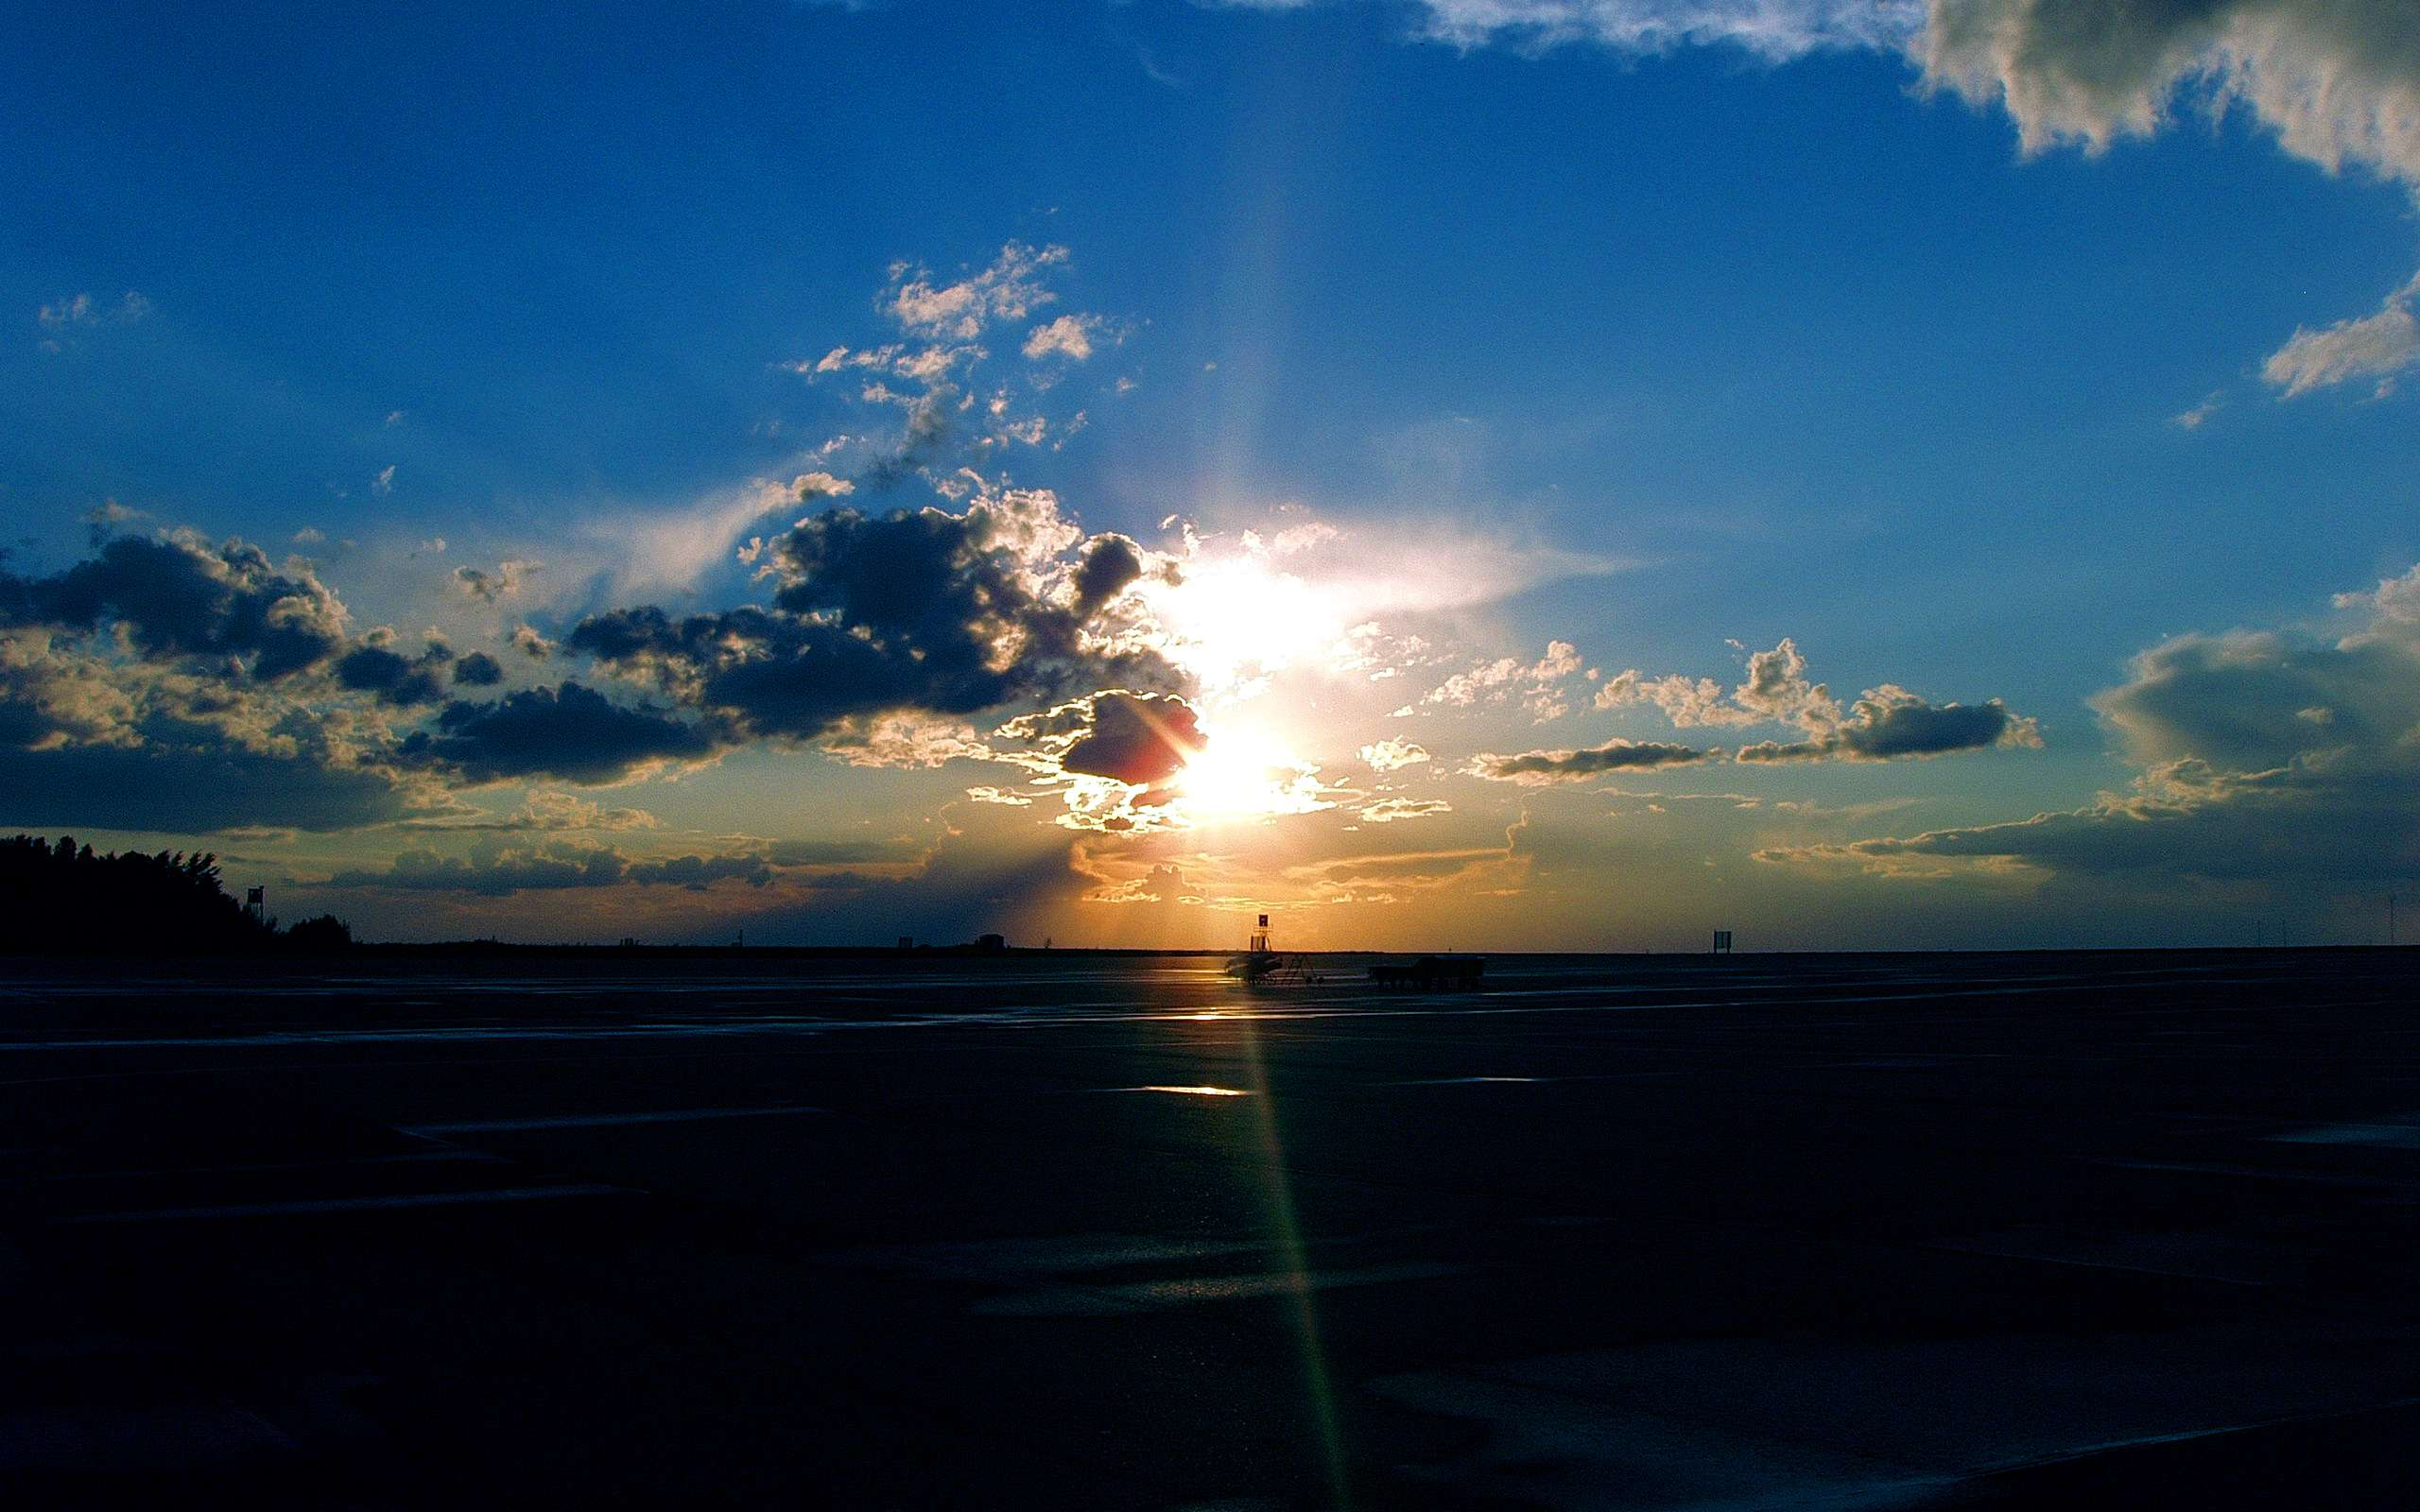 Airport Sunset Wallpapers : Hd Wallpapers